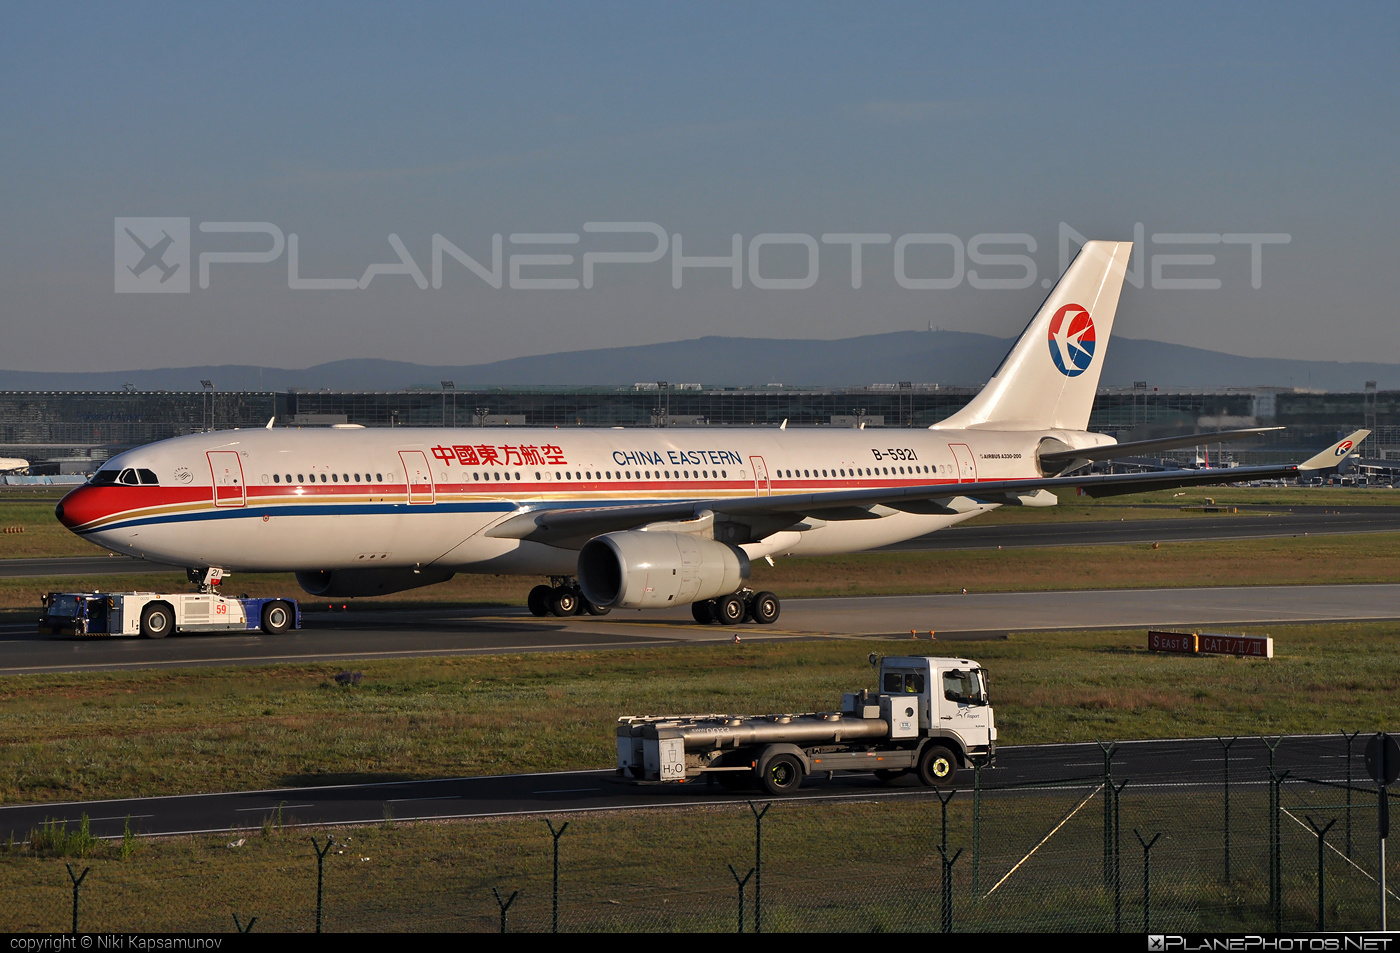 Airbus A330-243 - B-5921 operated by China Eastern Airlines #a330 #a330family #airbus #airbus330 #chinaeastern #chinaeasternairlines